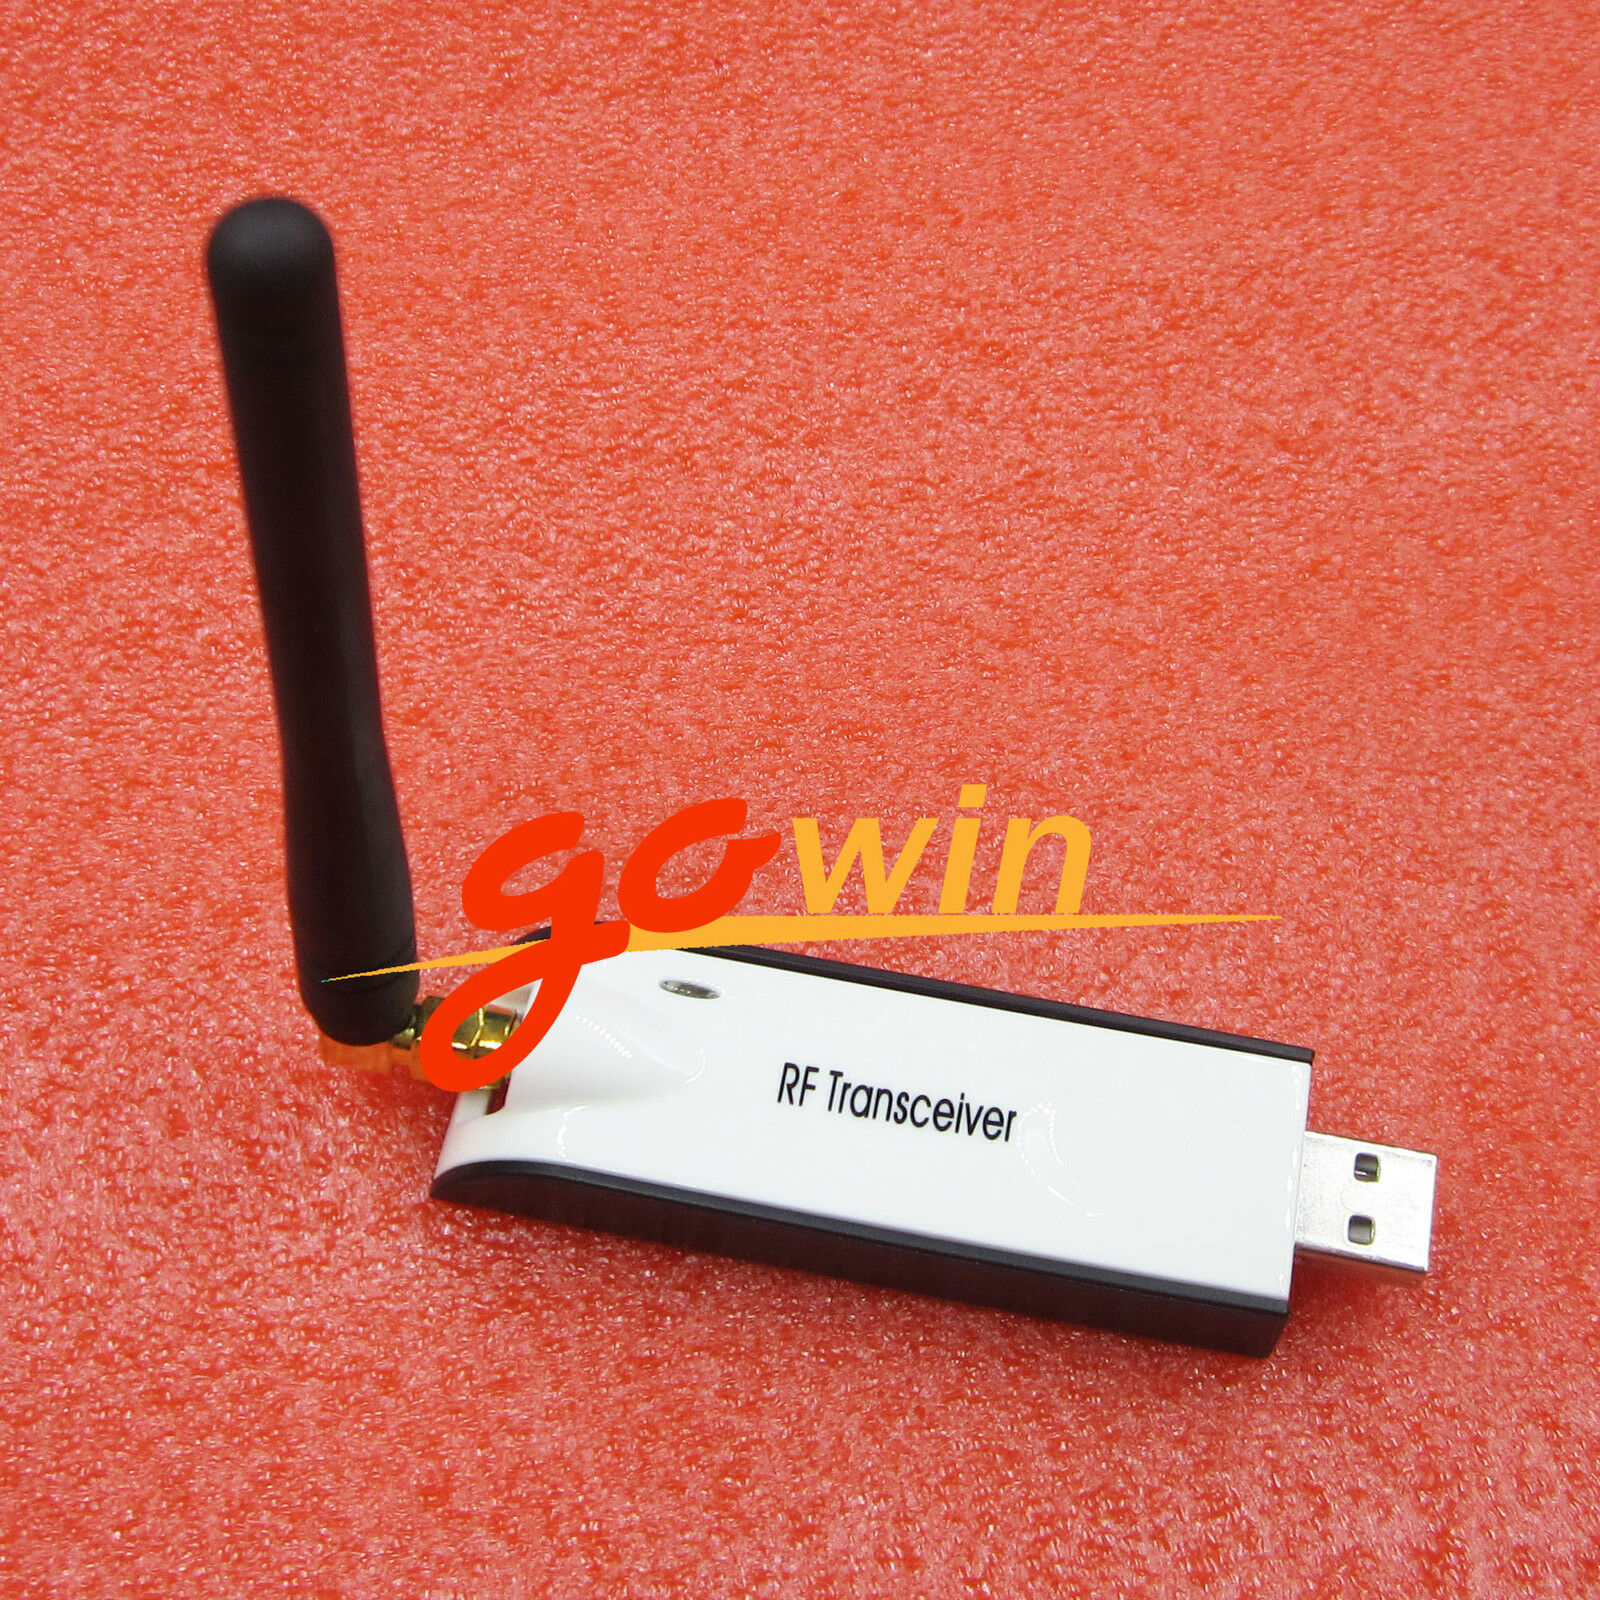 433mhz Cc1101 10mw Max232 Rs232 Usb Uart Rf Transceiver Wireless Laser 1 Of 4only 5 Available